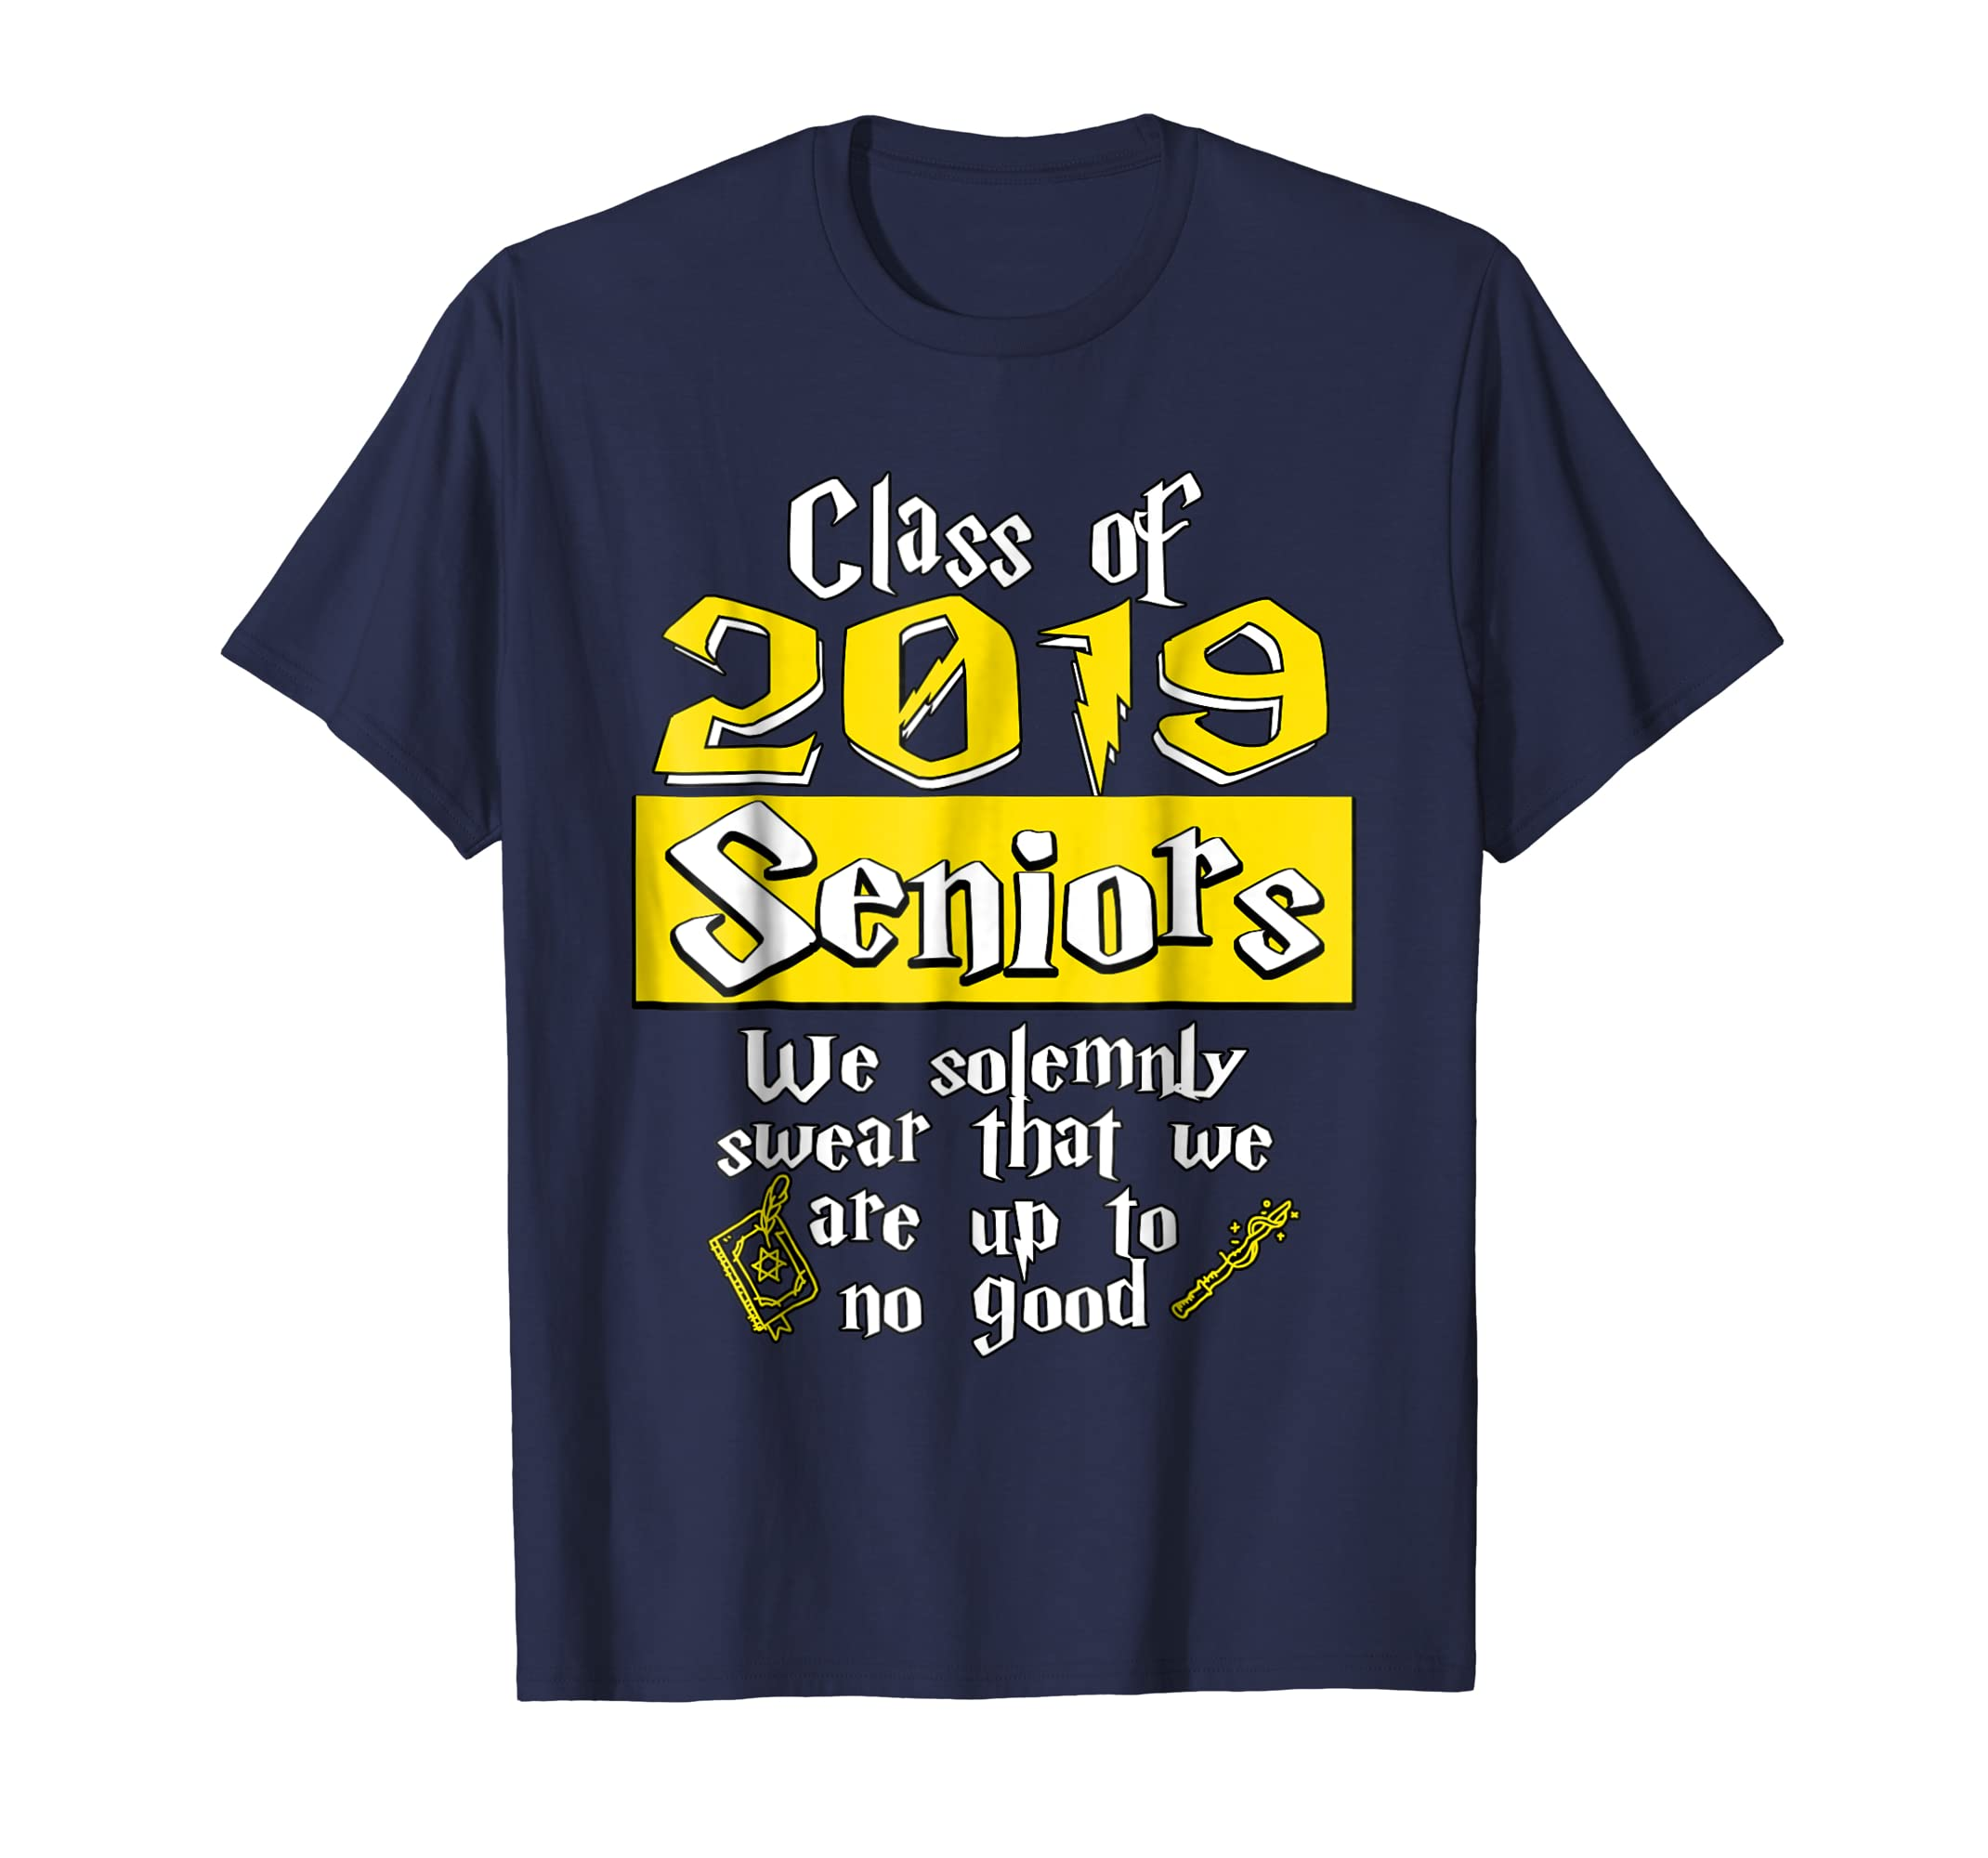 Class of 2019 Seniors solemnly swear up to no good T Shirt